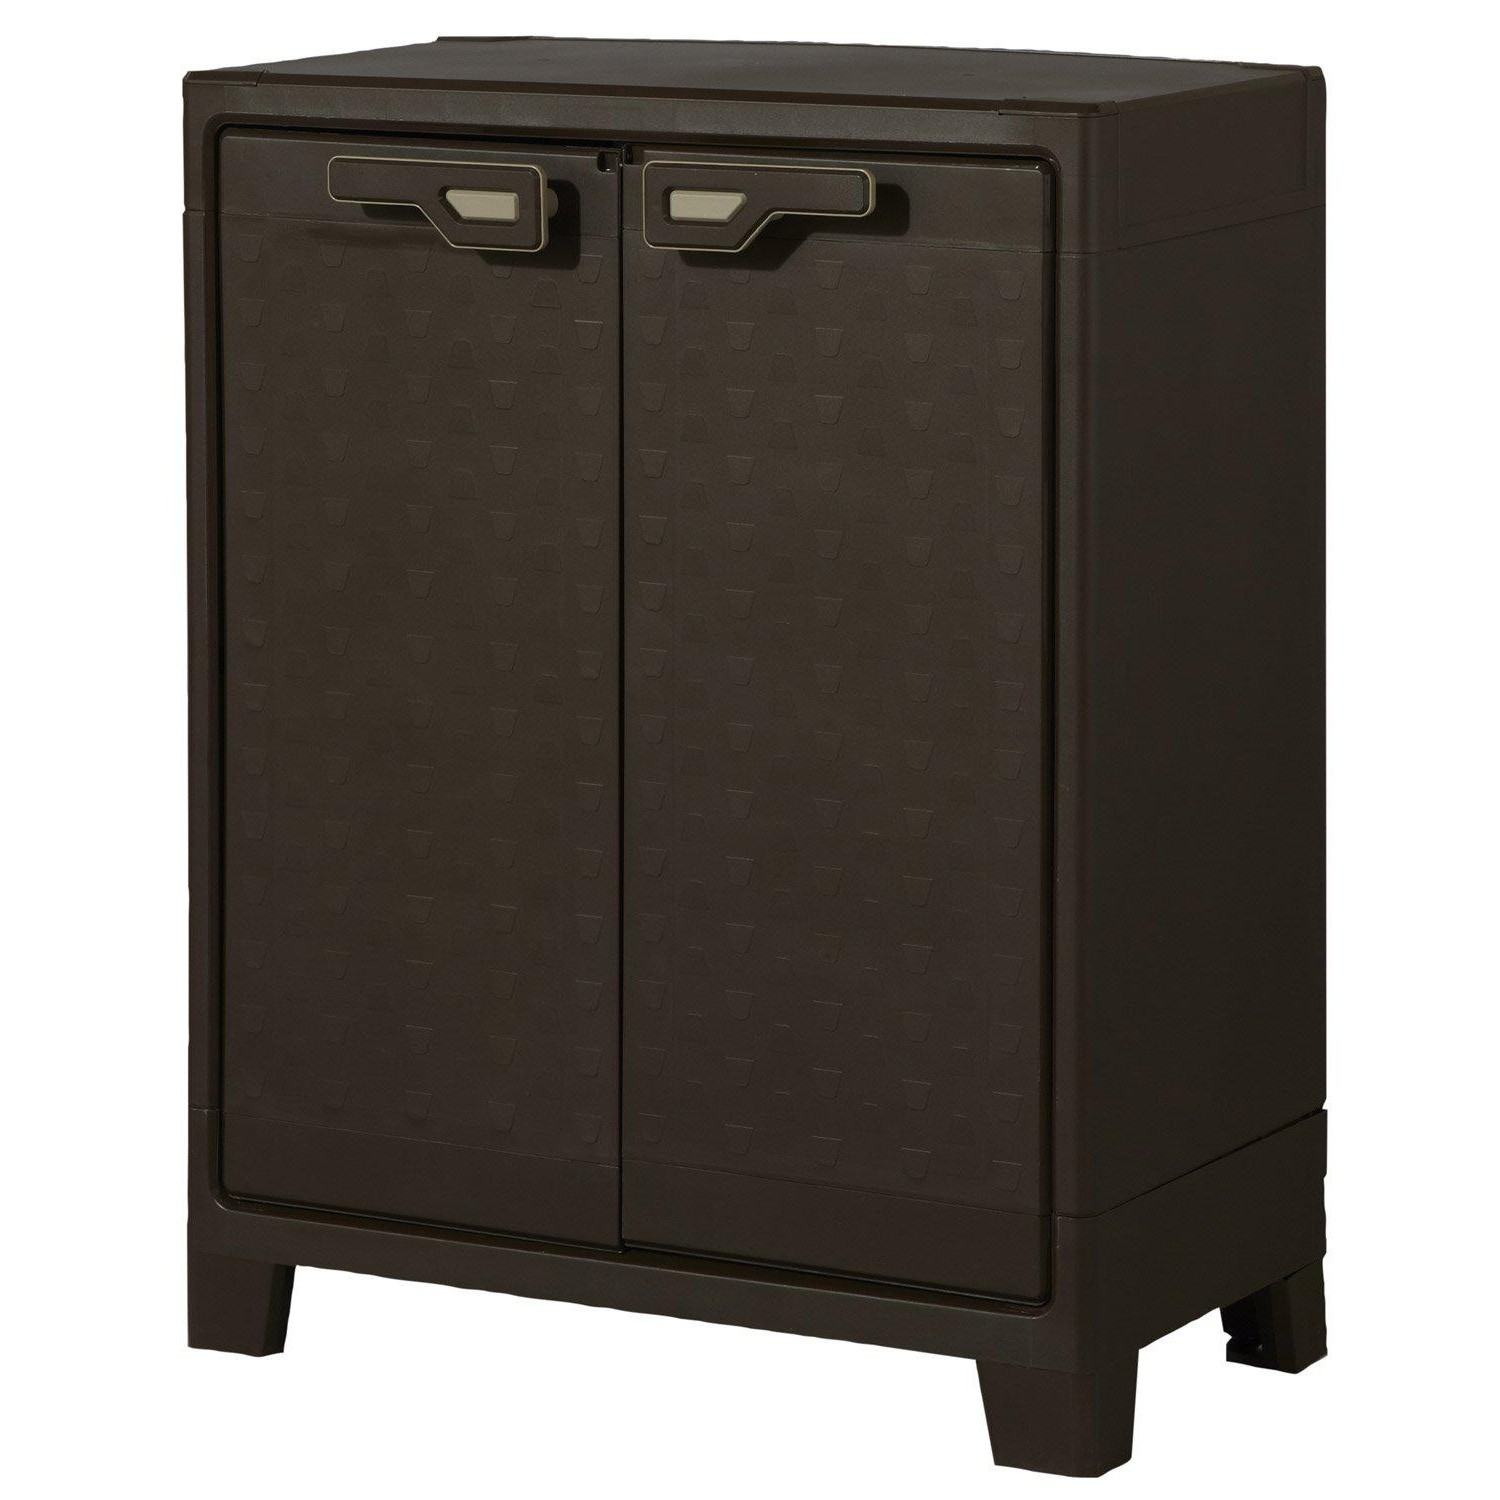 armoire de toilette leroy merlin cool armoire de toilette leroy merlin with armoire de toilette. Black Bedroom Furniture Sets. Home Design Ideas